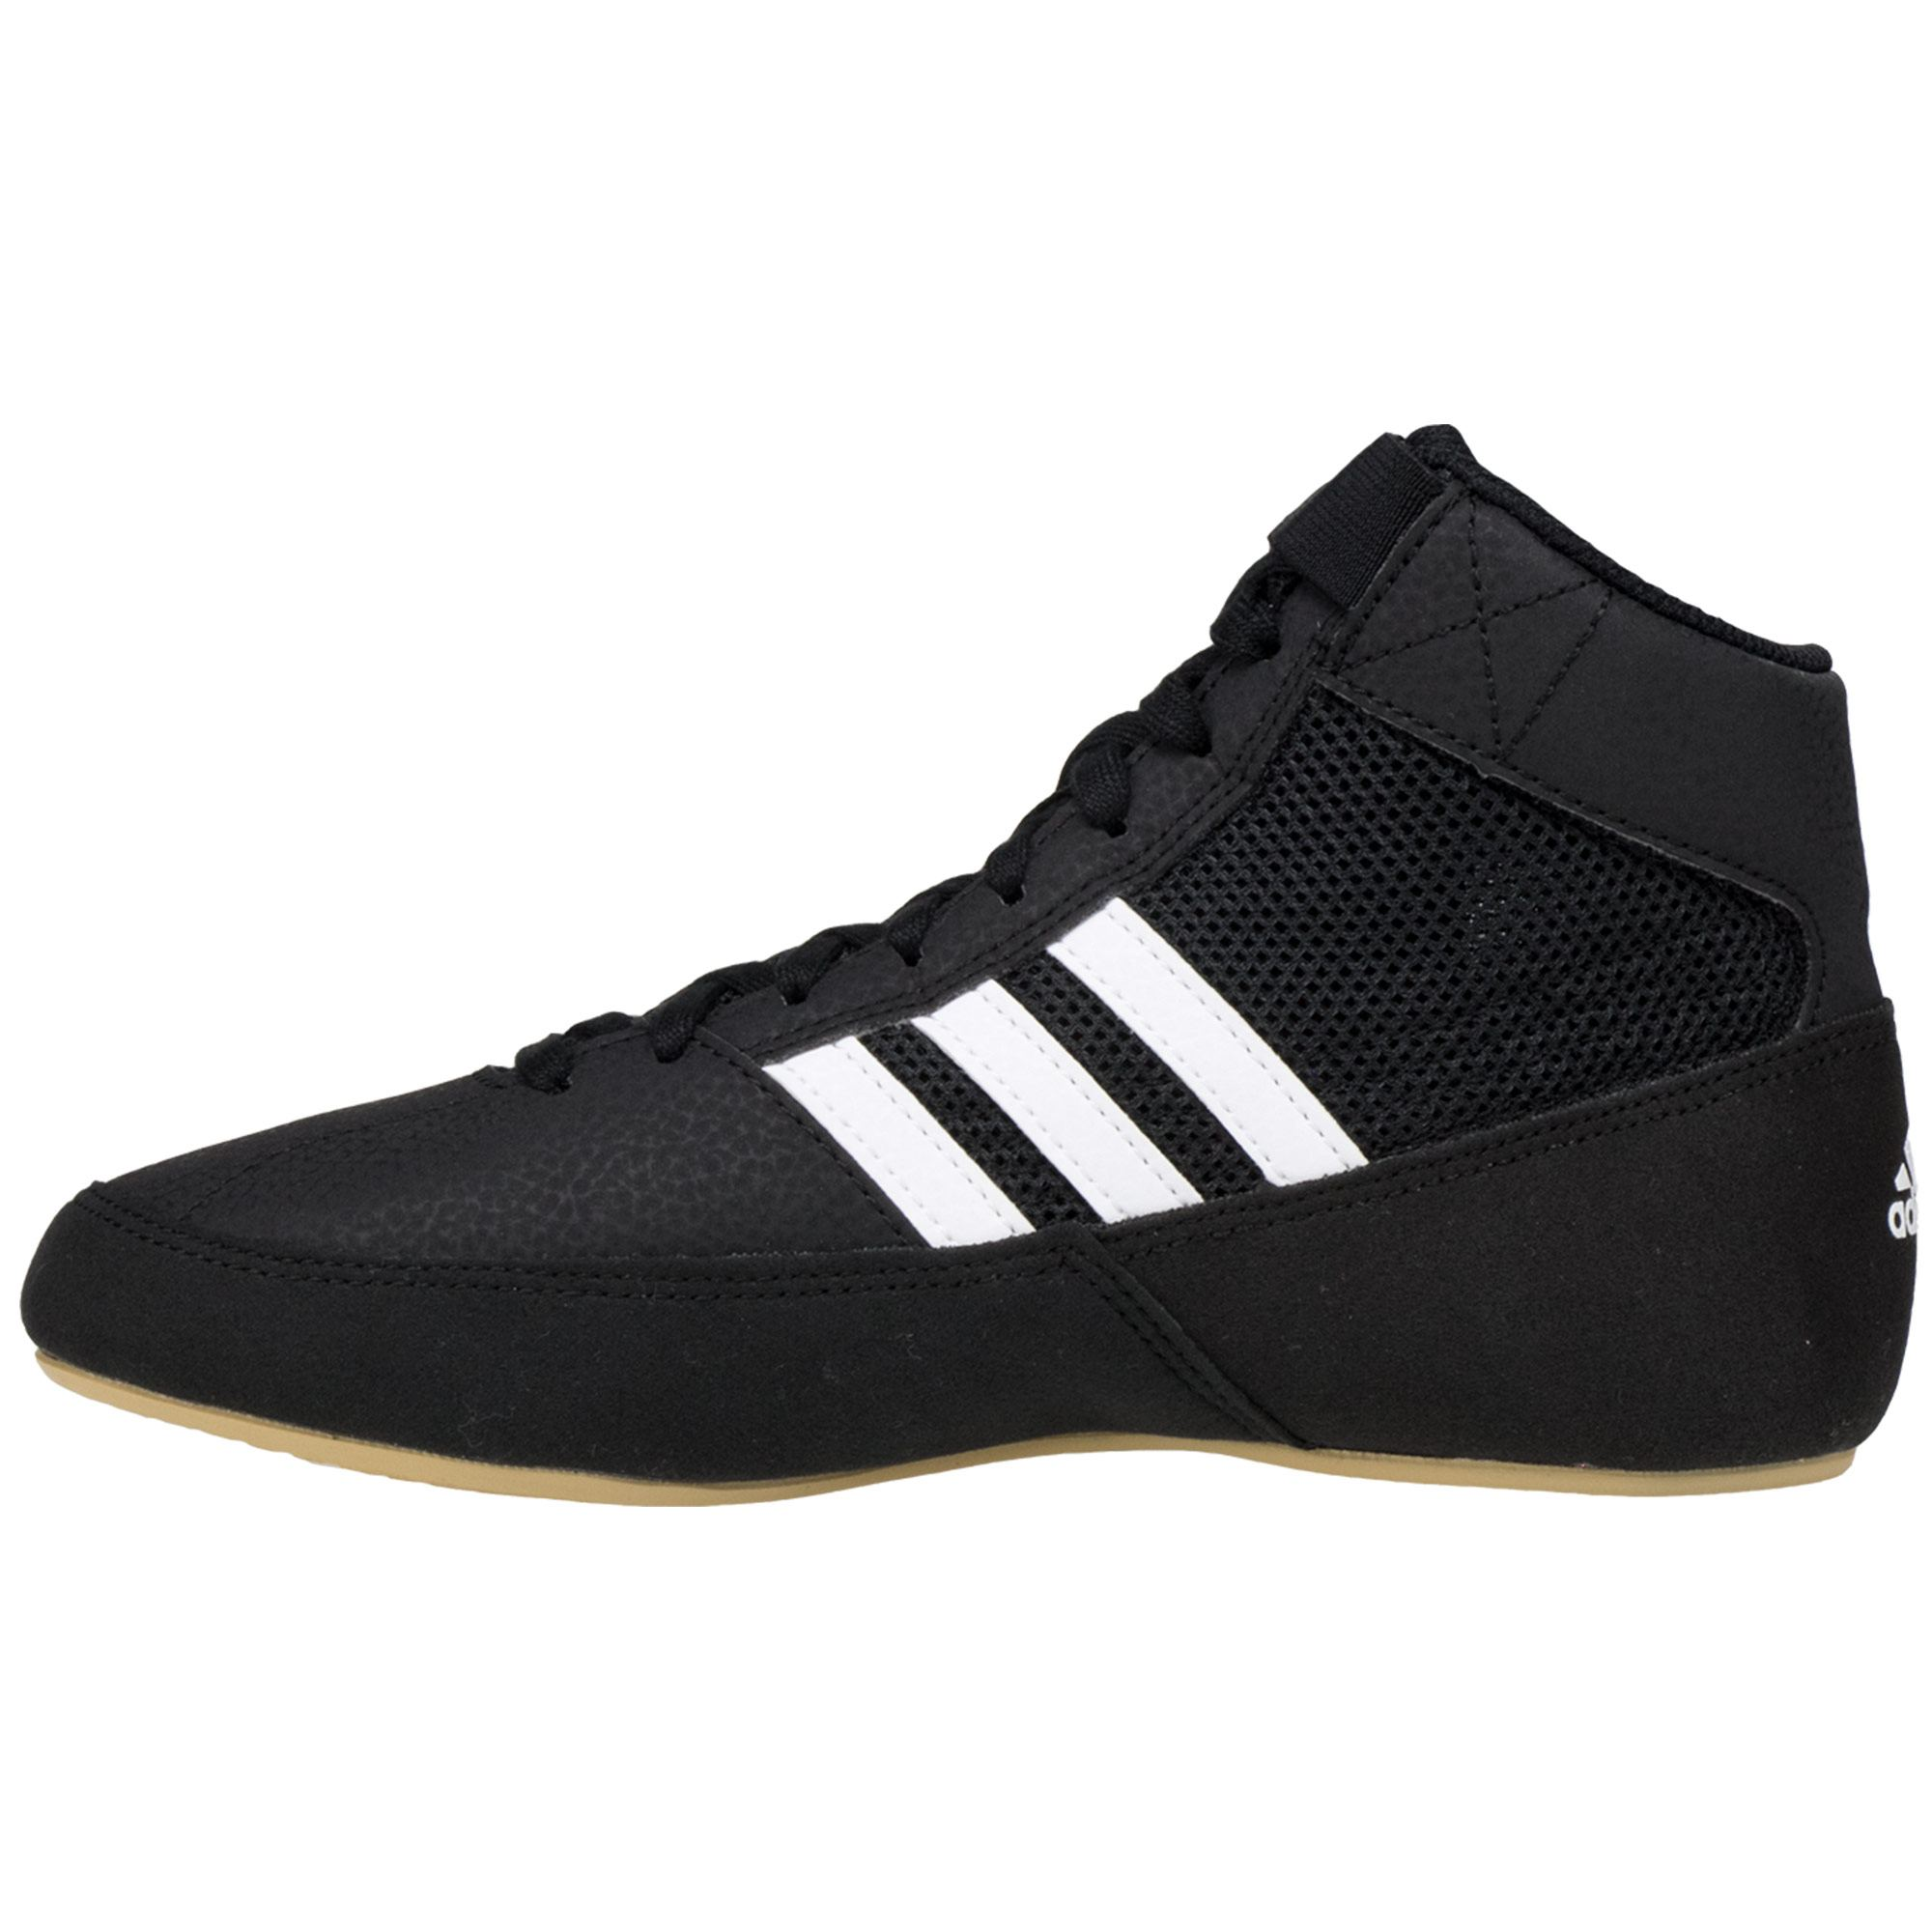 online retailer da496 93c48 greece adidas g96983 hvc wrestling shoes mens size 7 black white ebay e2e57  c7347  clearance mainadidas hvc 2 adult black white beige 7e580 95d5b